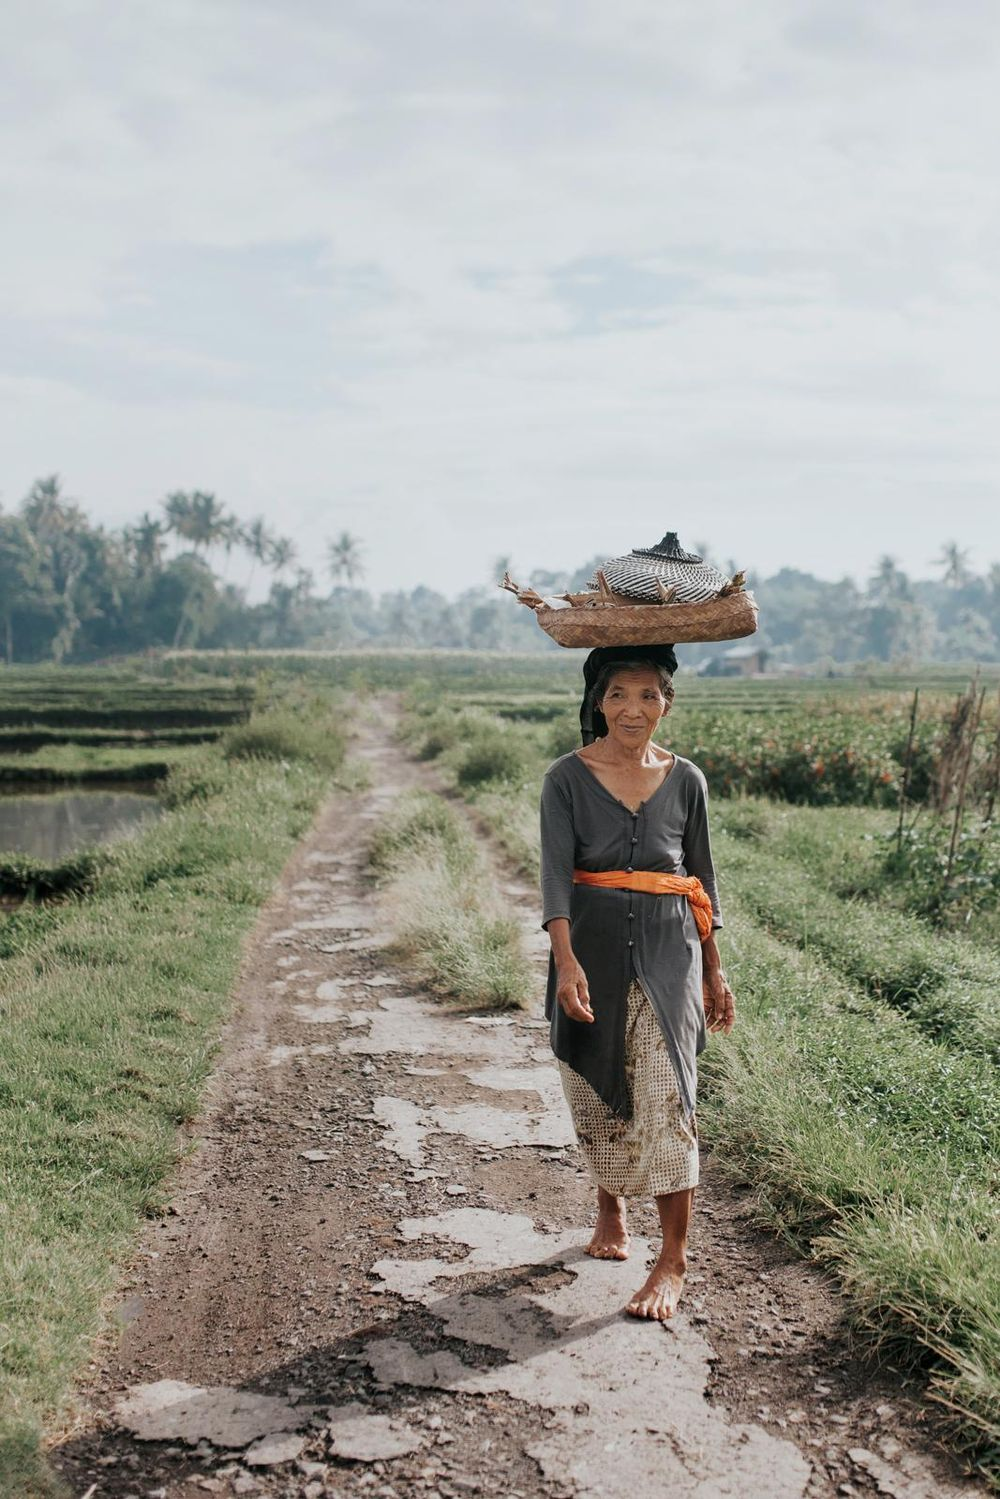 Street Photography in Bali - image 4 - student project